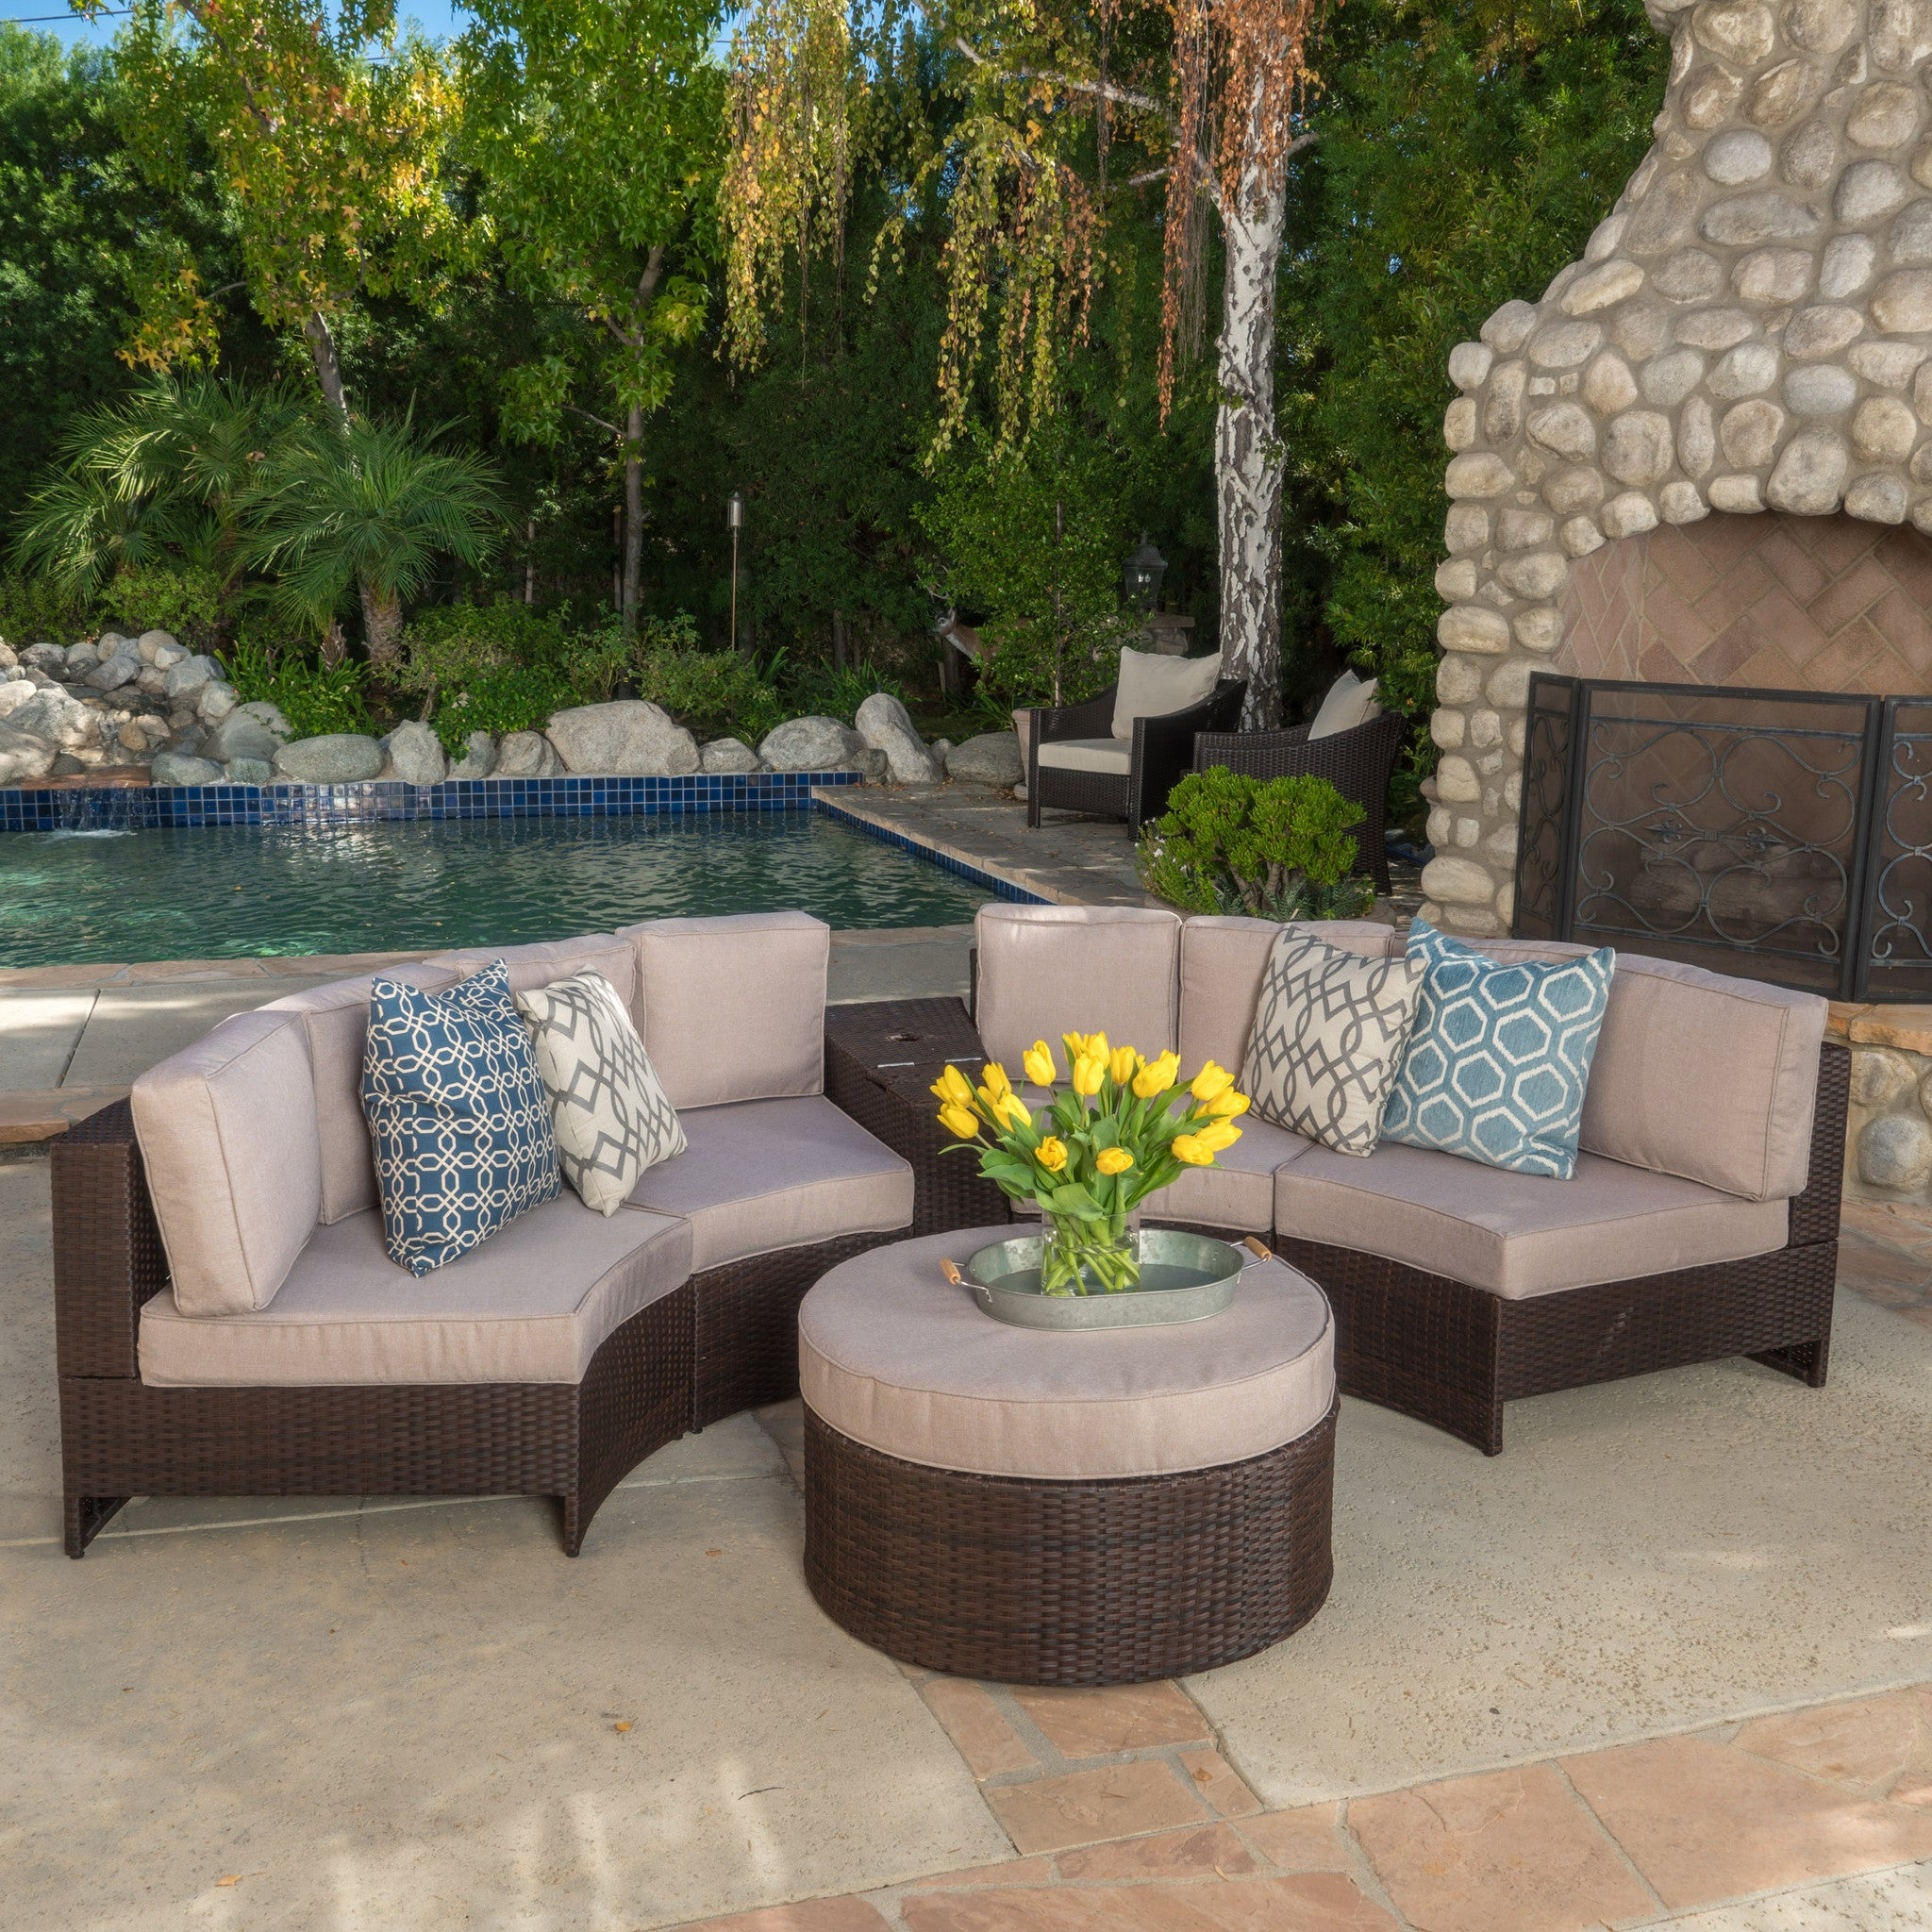 Outdoor Sectional Sofa Set Storage Trunk foto